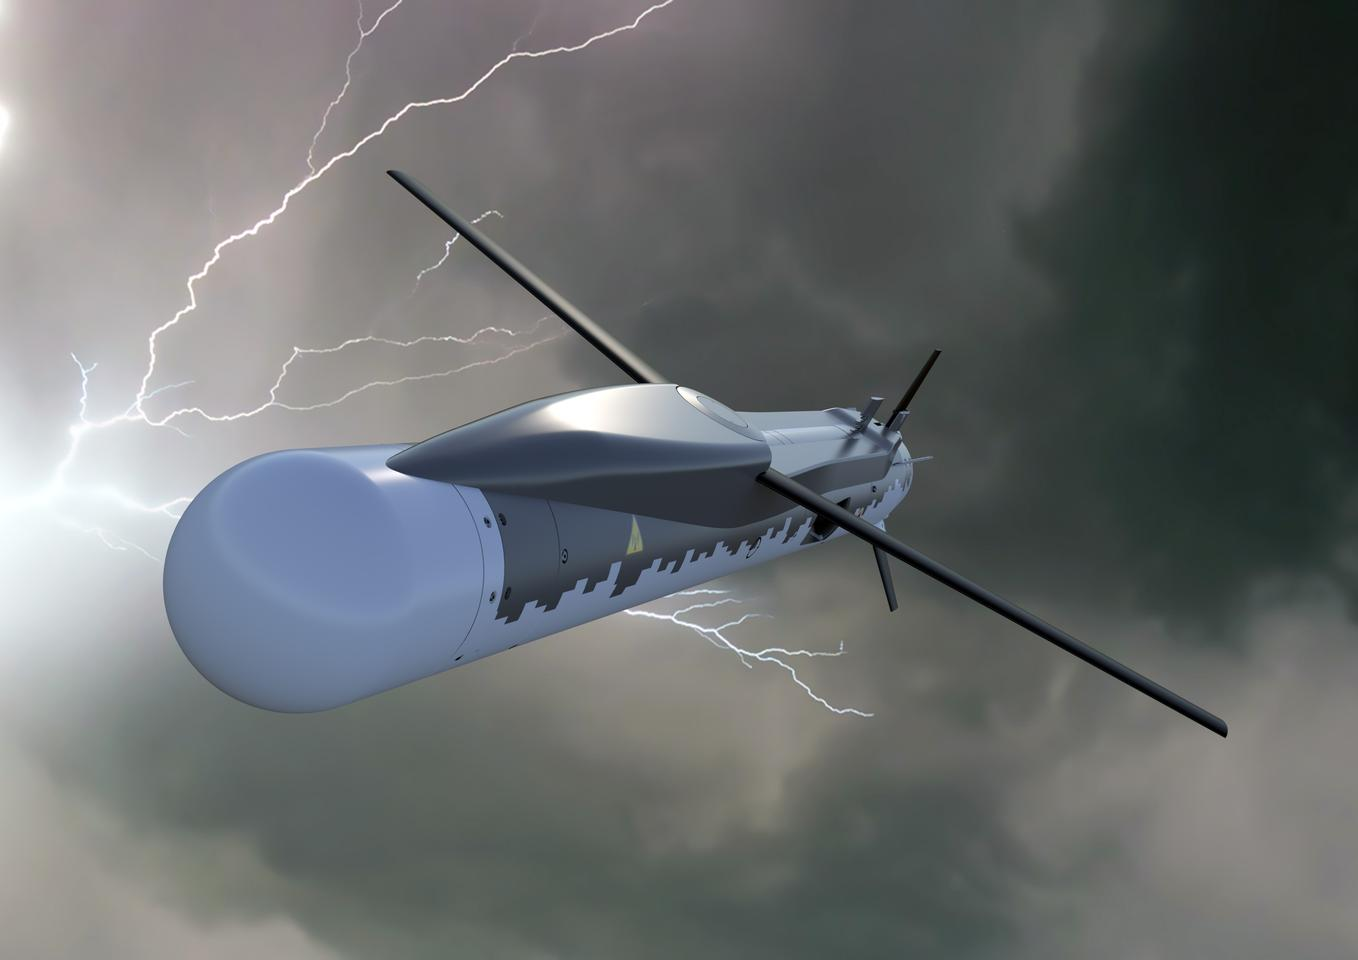 The CSTWD program will allow next-generation missiles like the Spear 3 to communicate with one another